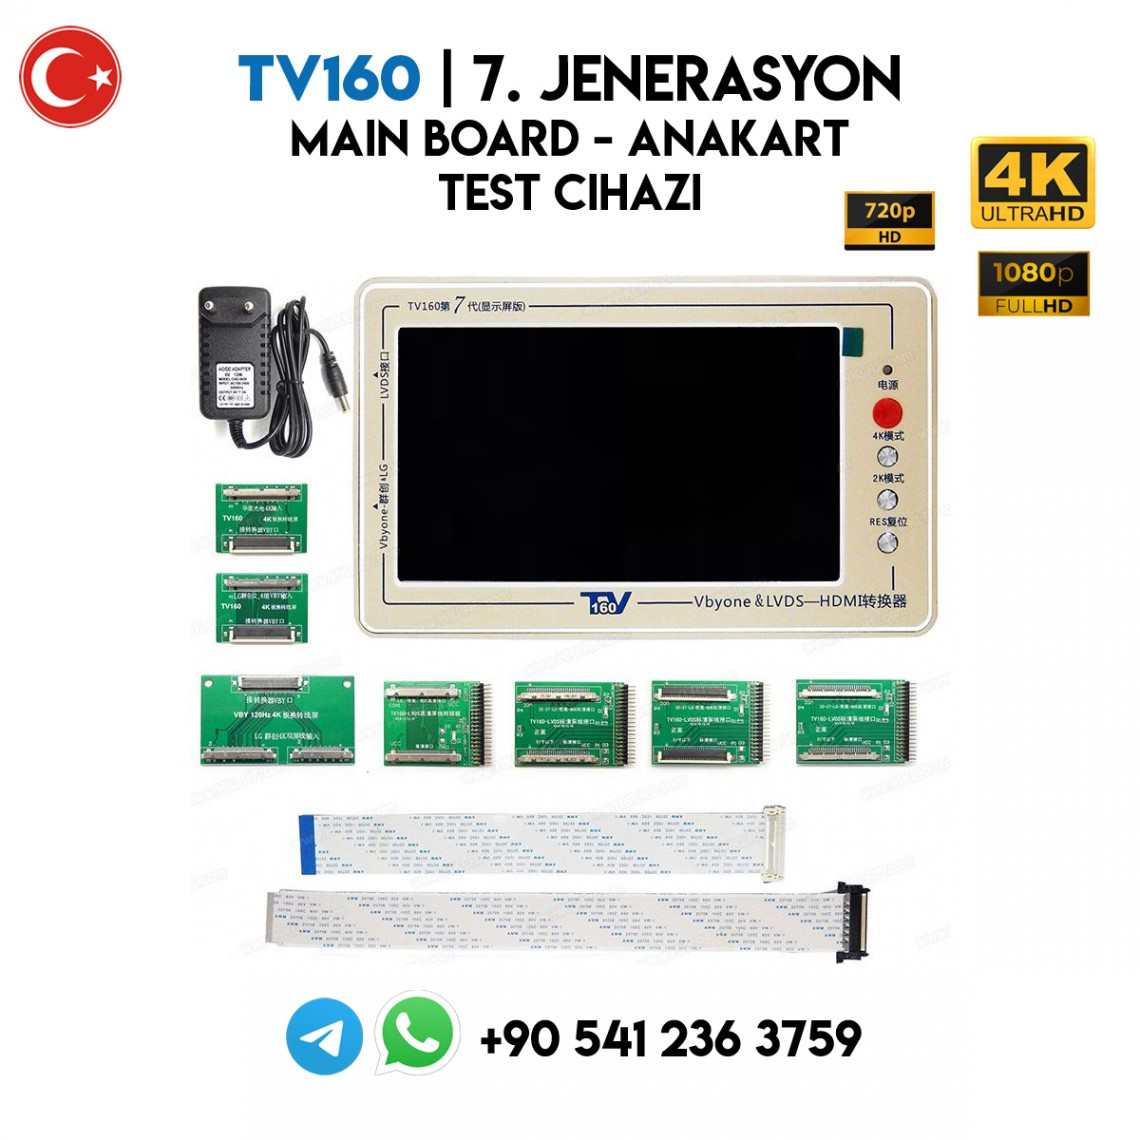 TV160 | 7. JENARASYON, Lcd, Led TV Main Board, Anakart Test Cihazı, 4K, 2K, FULL HD, HD READY